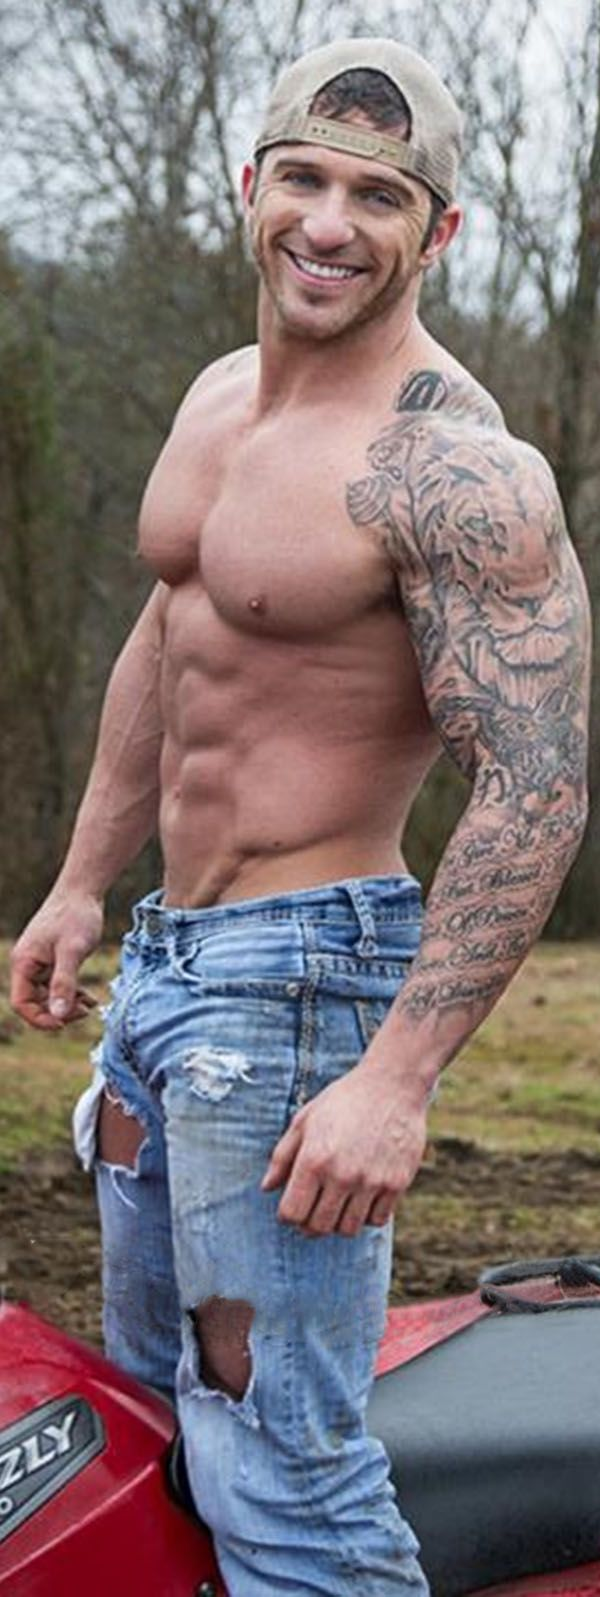 Sexy naked country boys, bdsm gear for sale